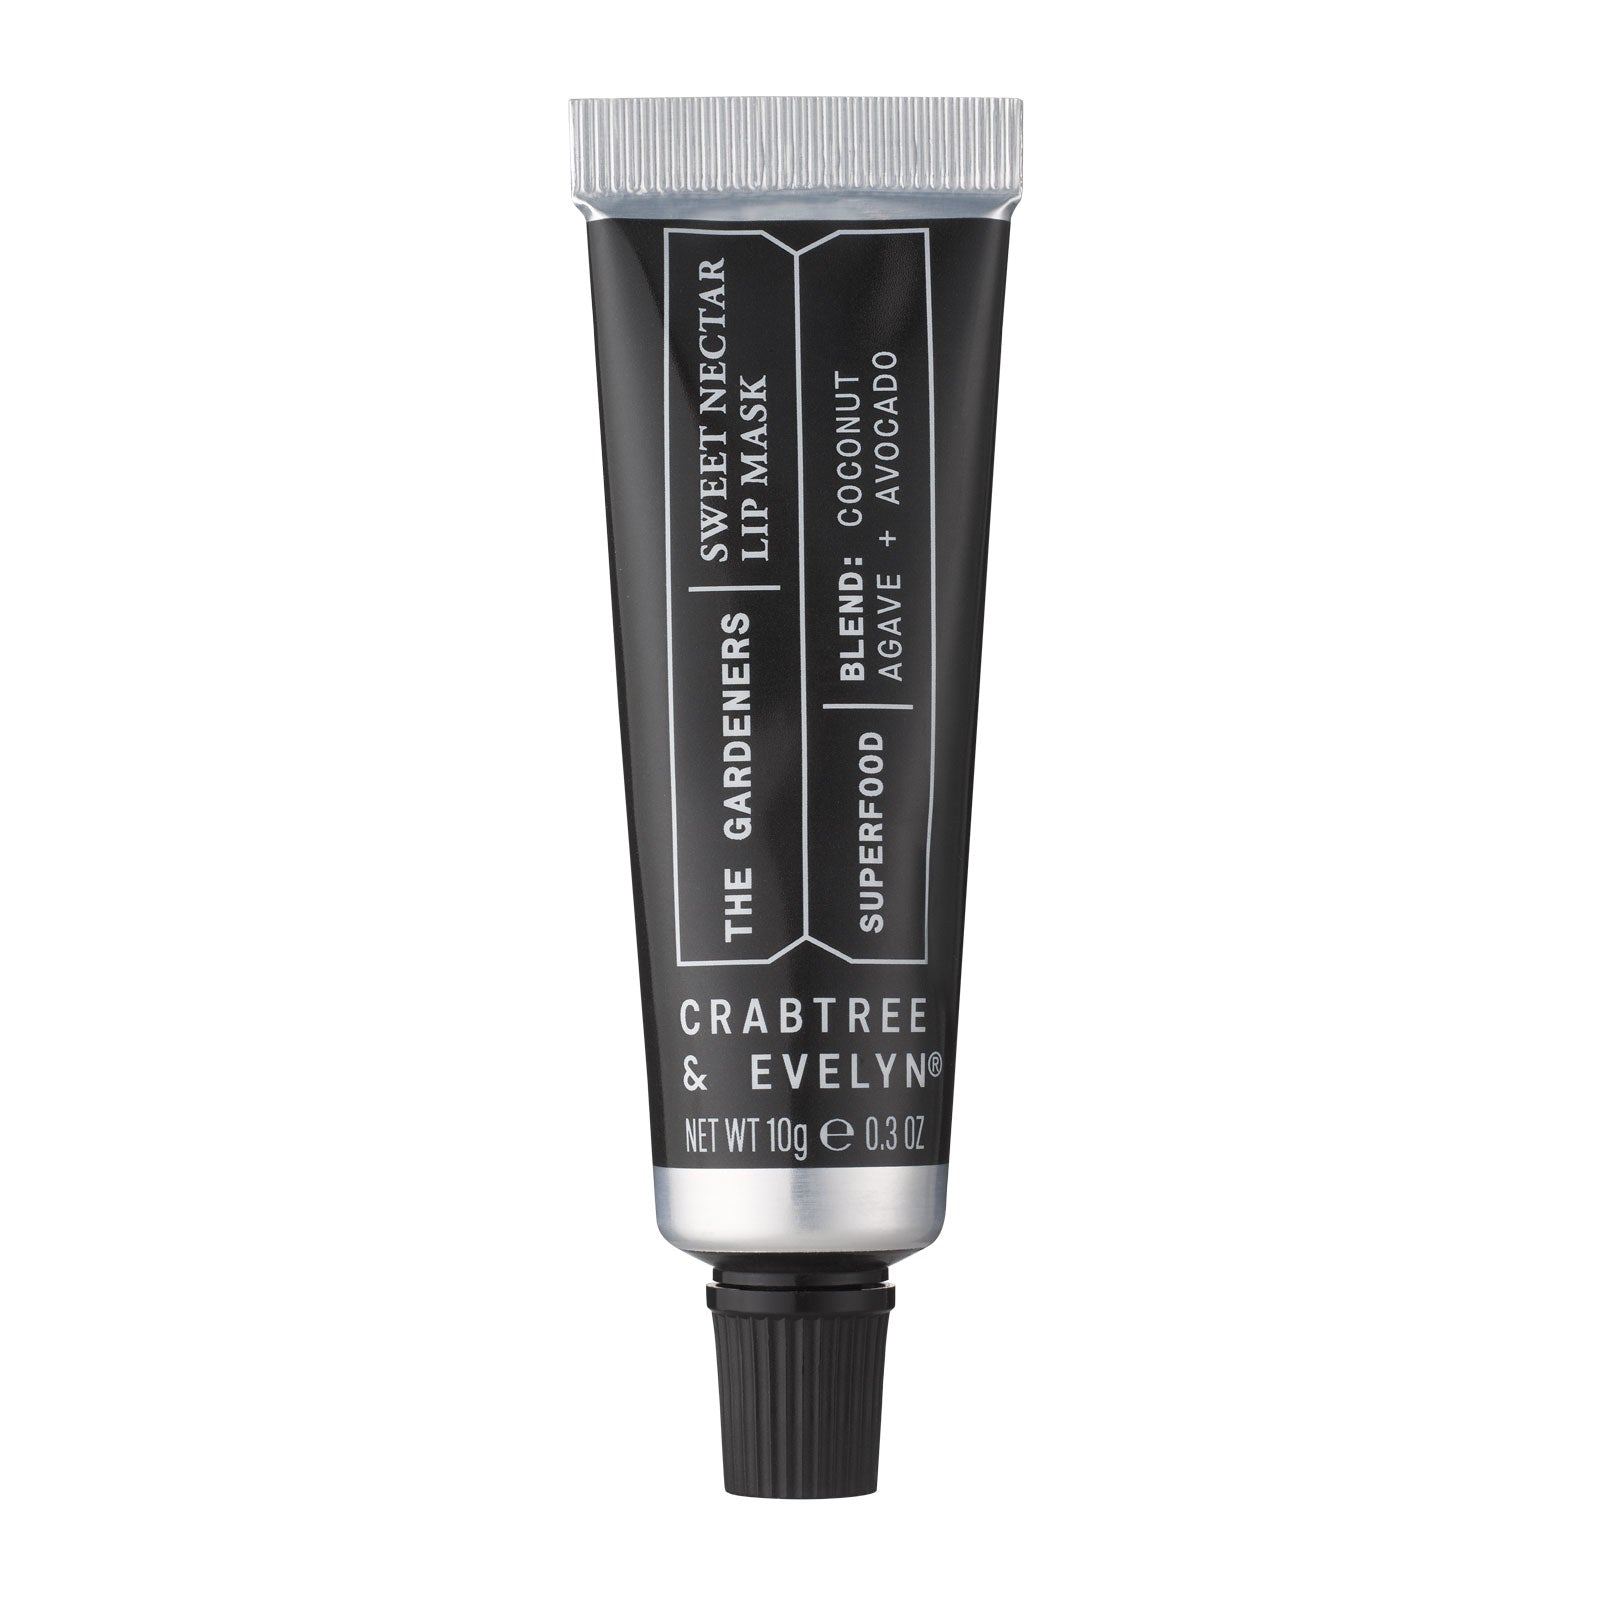 CRABTREE & EVELYN The Gardeners Sweet Nectar Lip Mask 10g